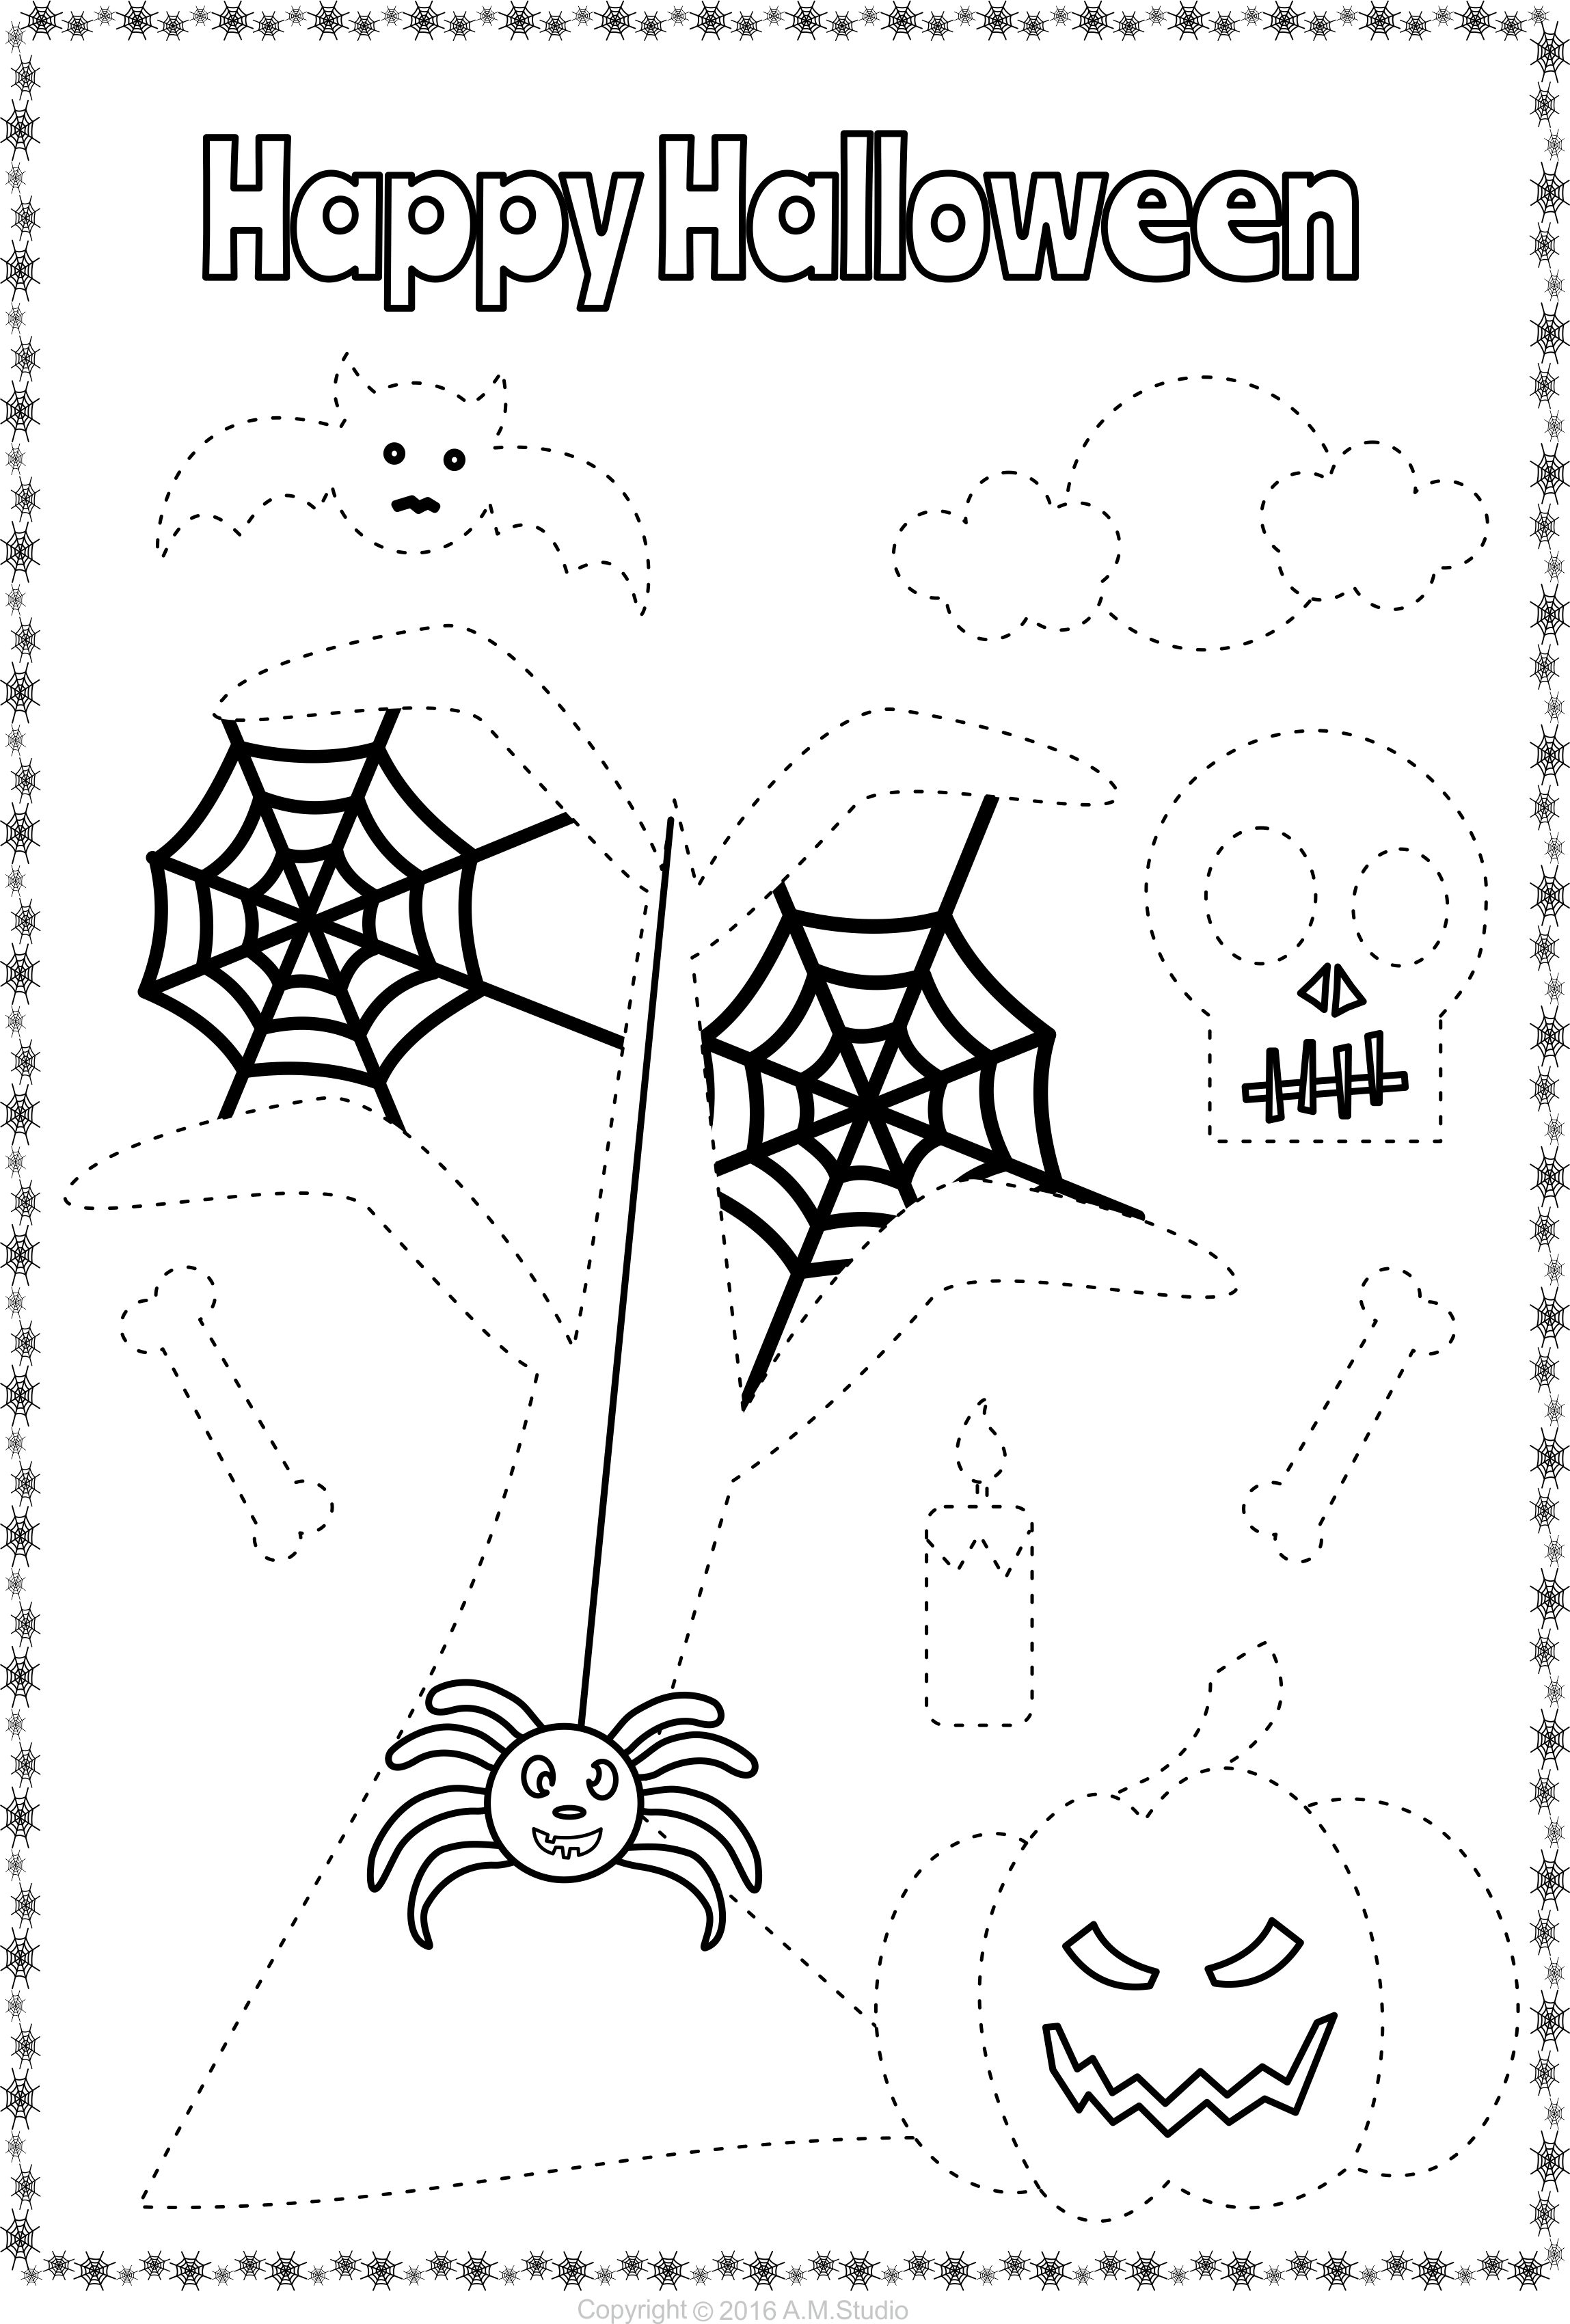 13 Halloween Themed Trace And Color Pages For Kids